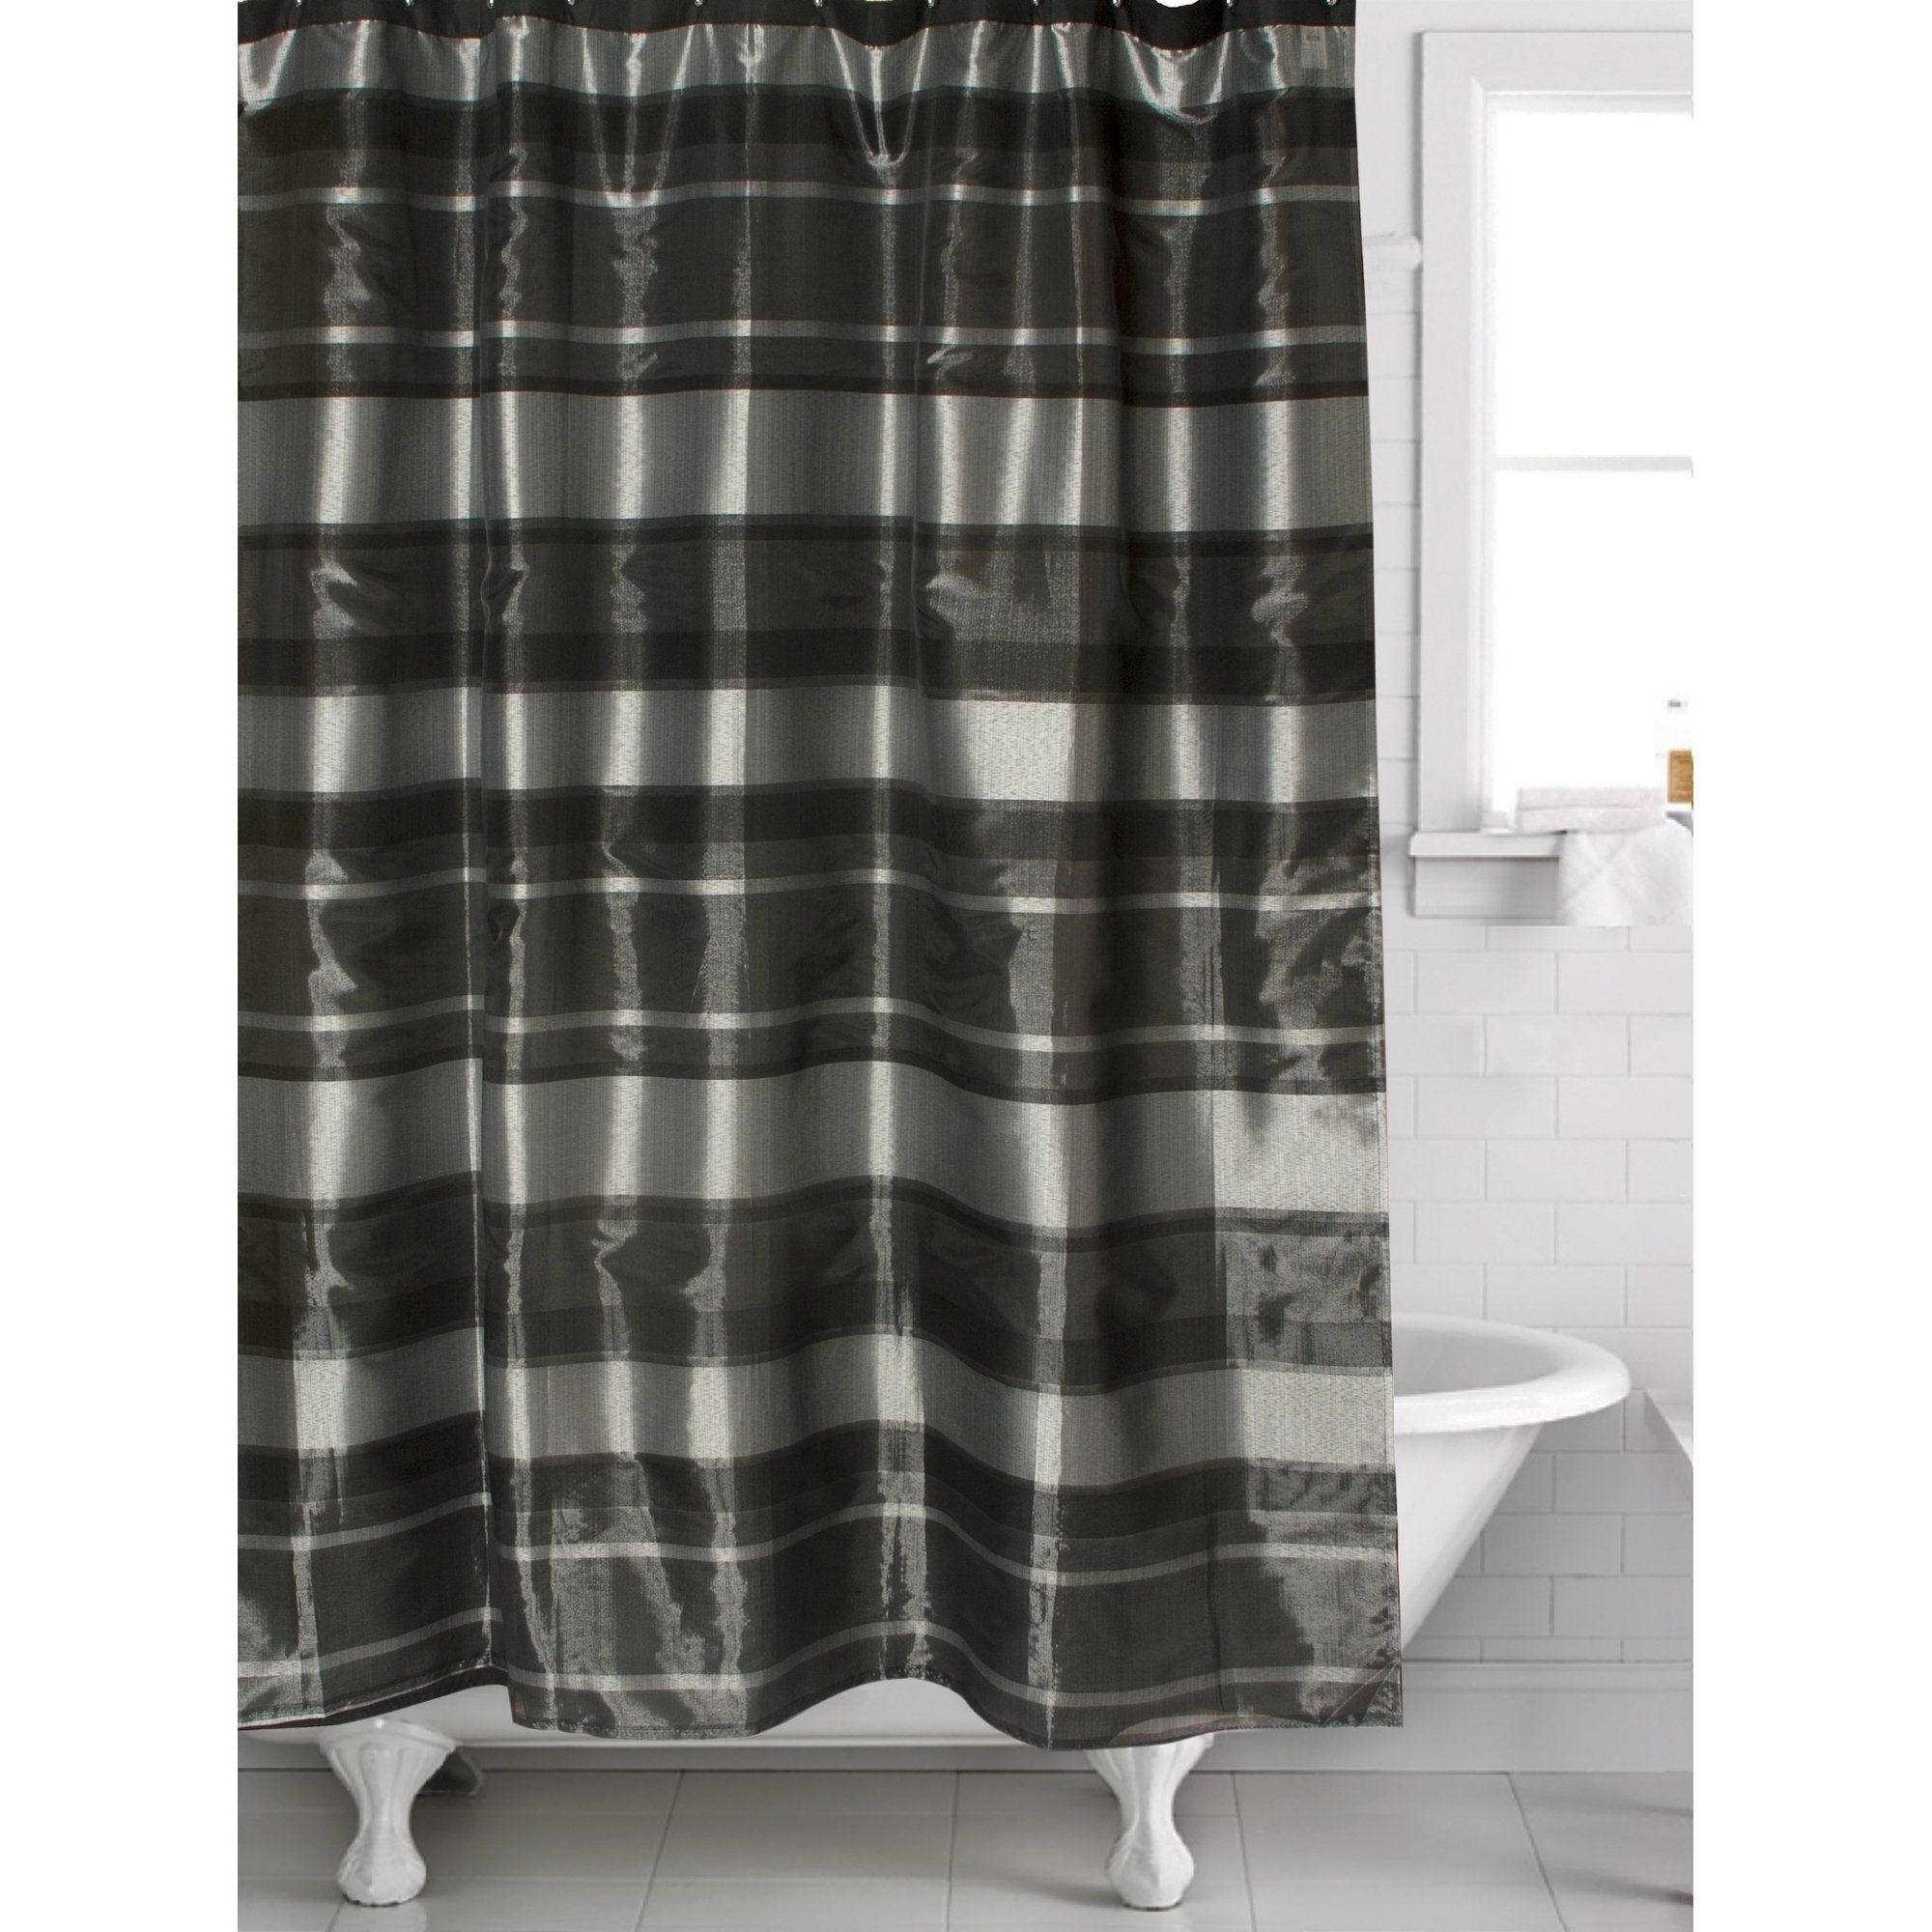 Twilight Shower Curtain 70 X 72 Black Machine Wash Polyester Famous Home Black White Tiles Bathroom White Bathroom Tiles Curtains